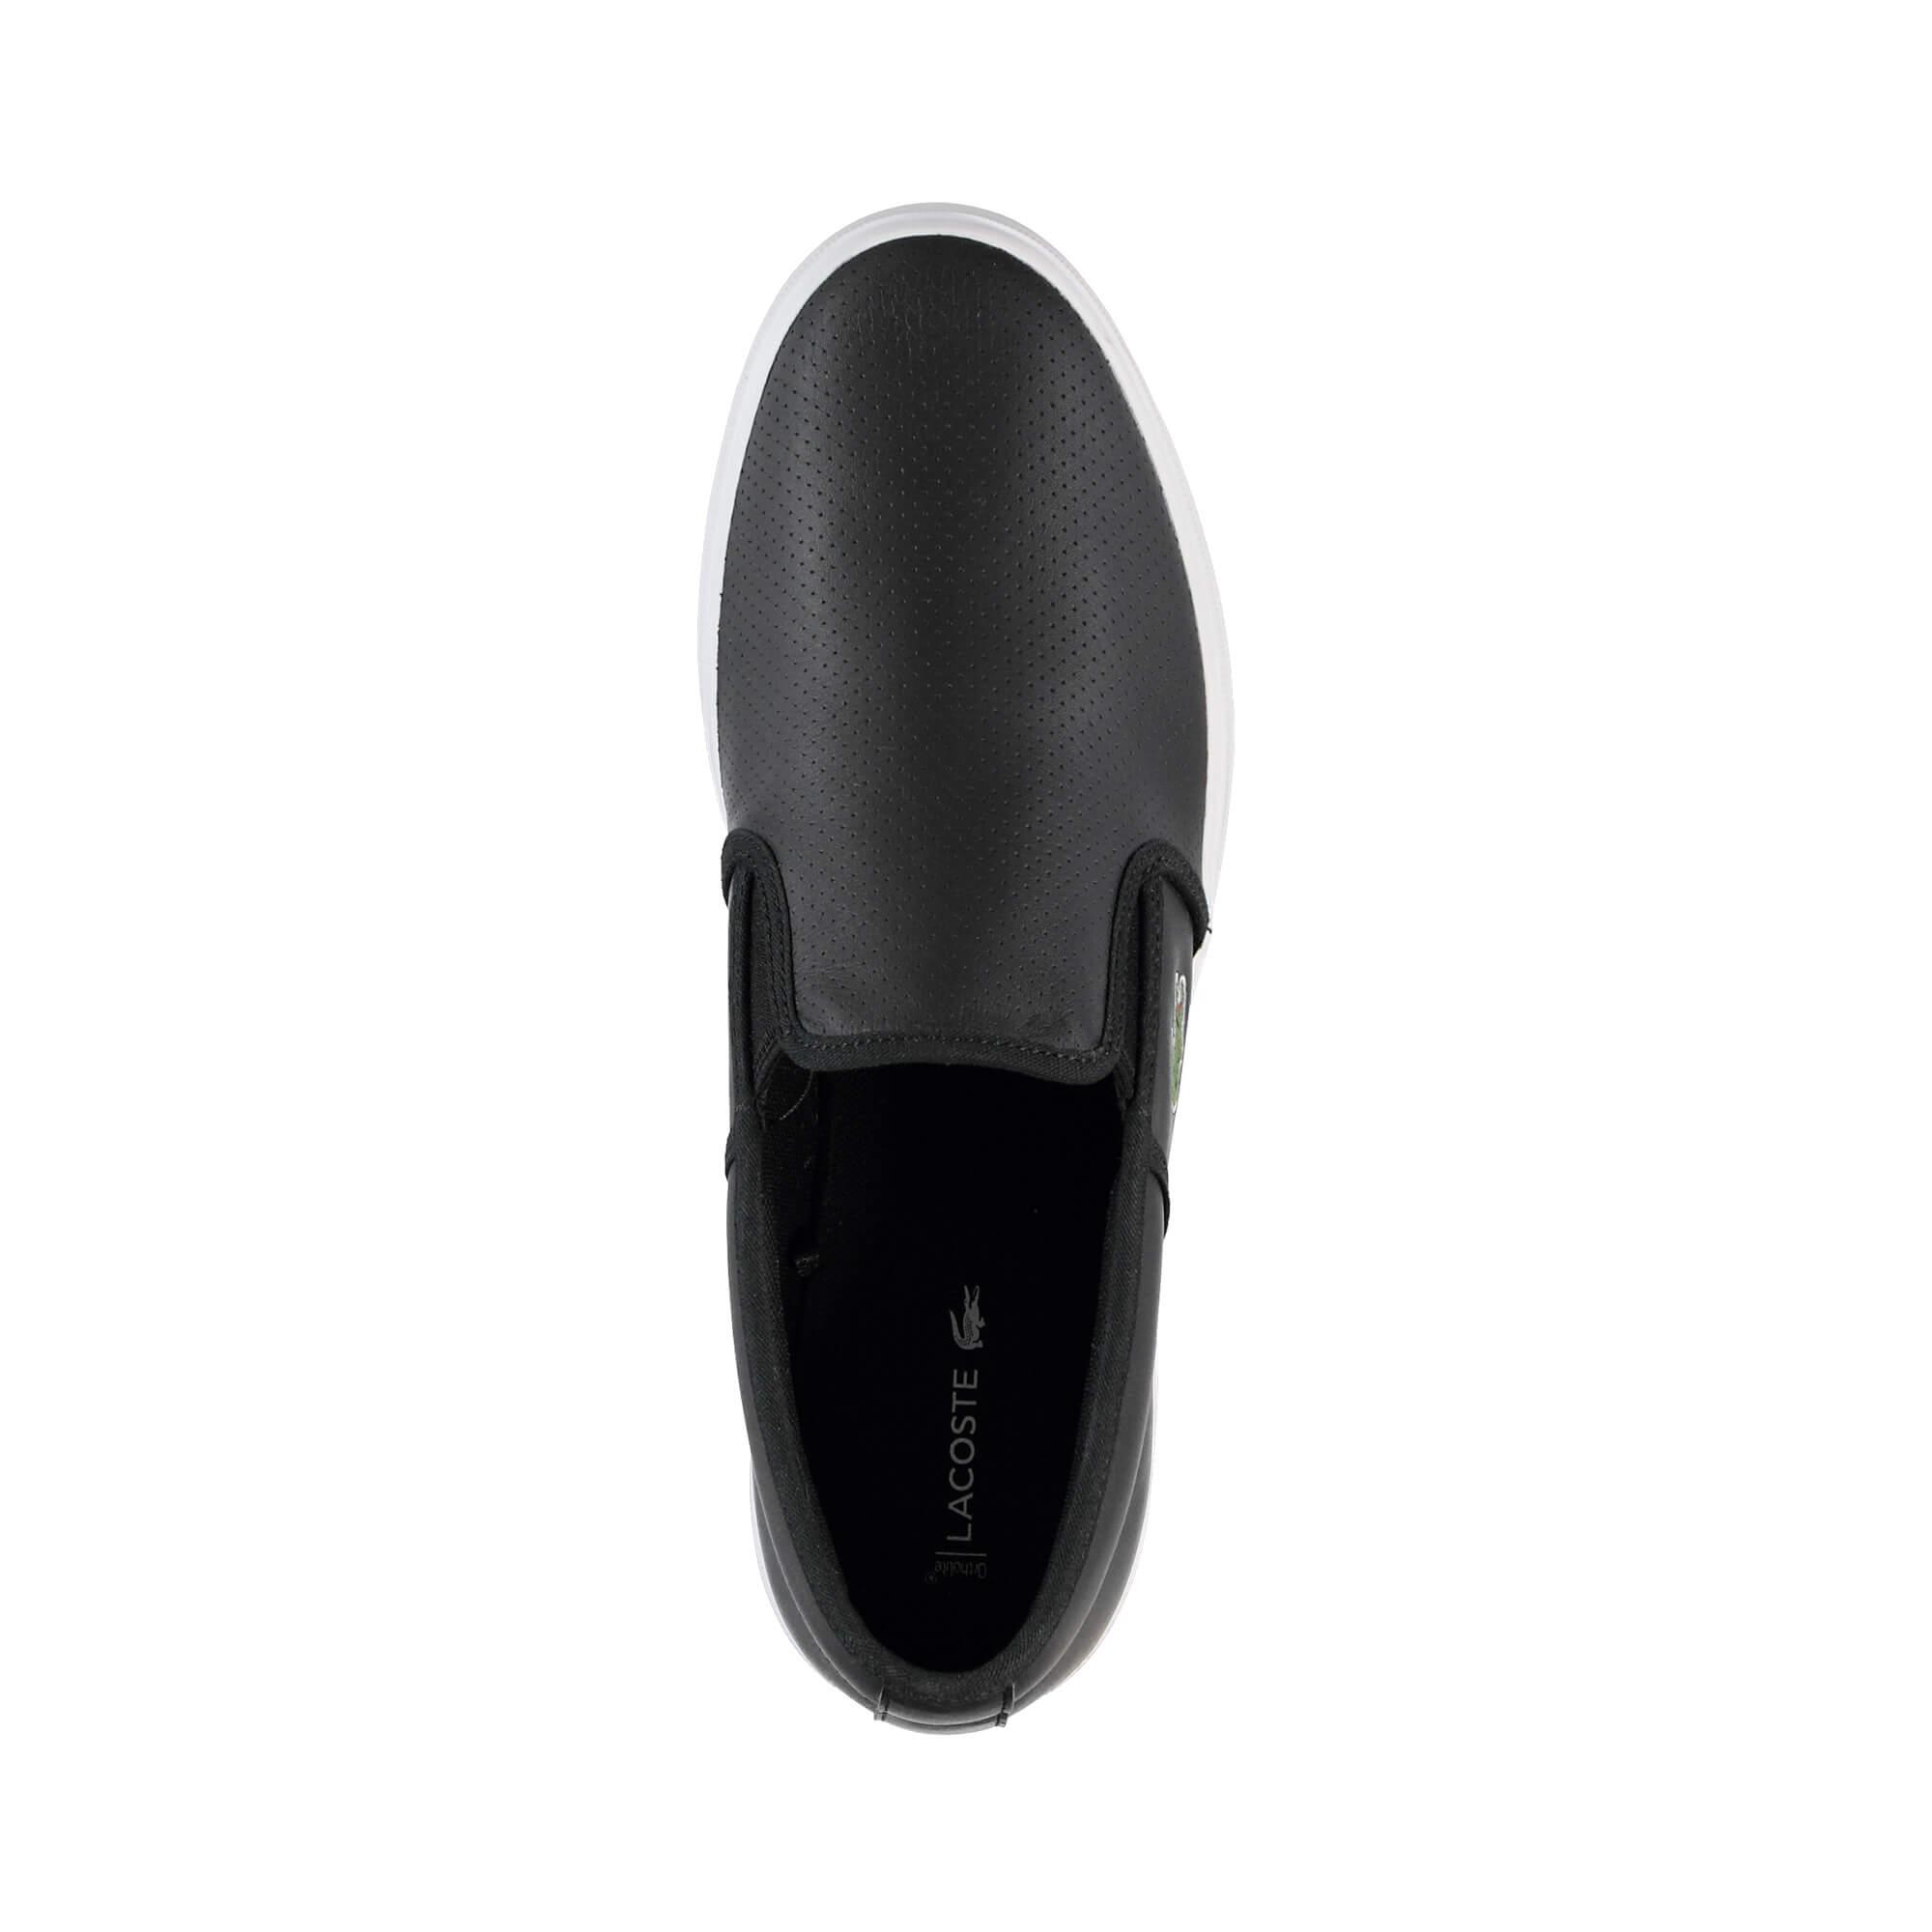 Lacoste Men's Slip On Shoes